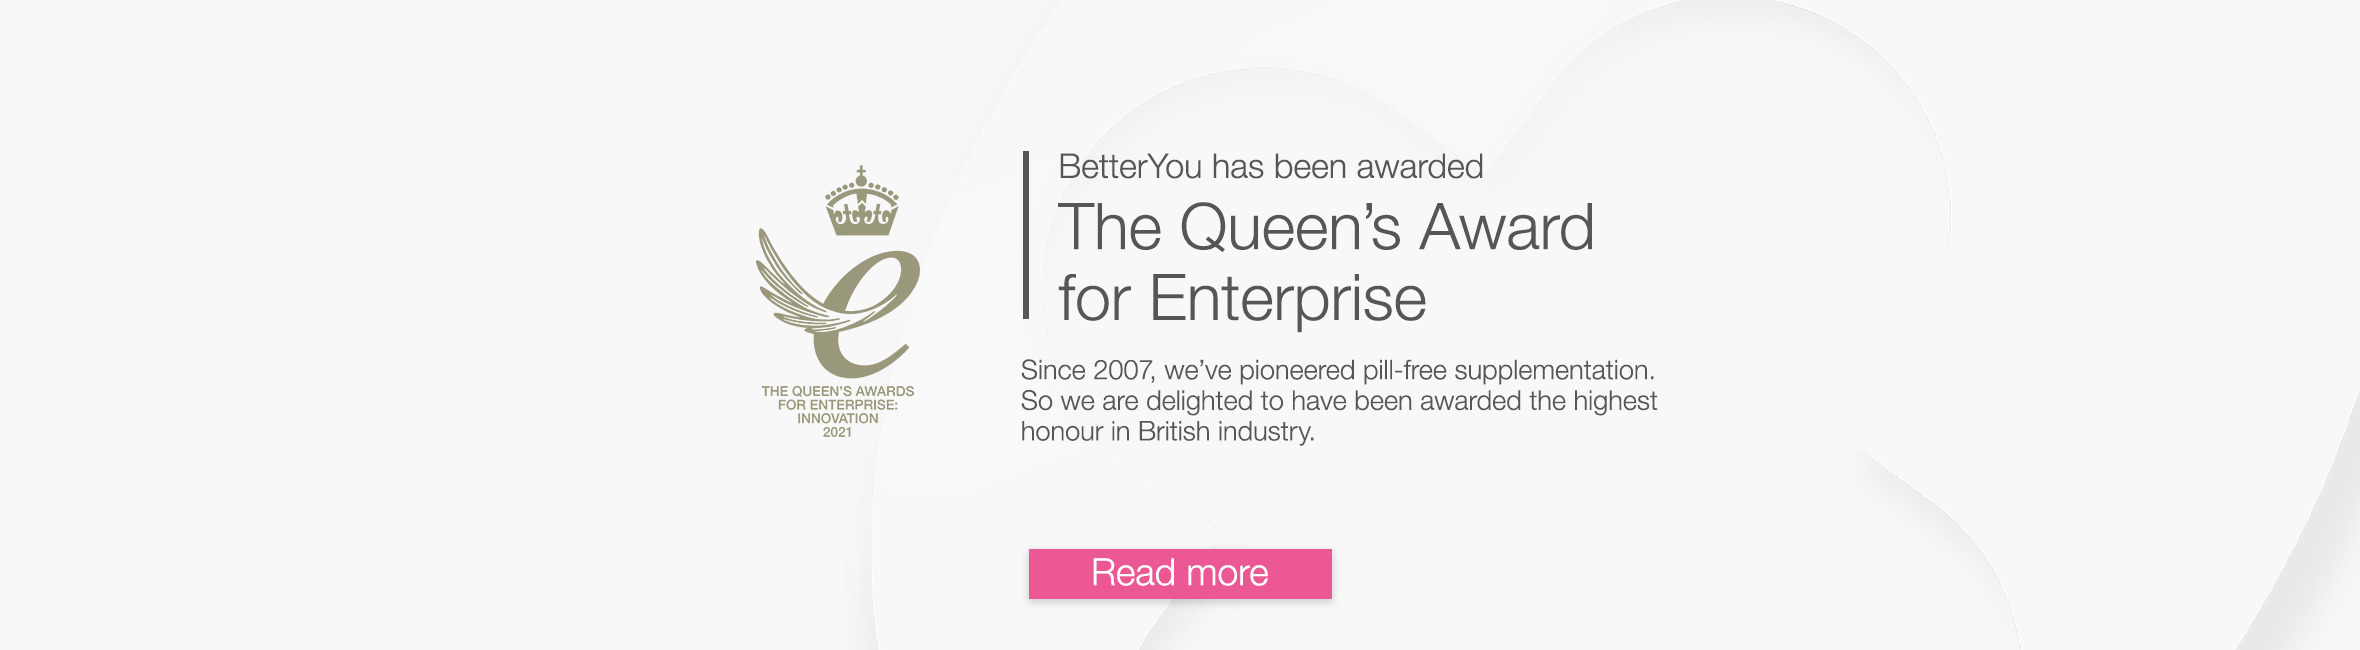 BetterYou has been awarded the Queens Award for Enterprise: Innovation